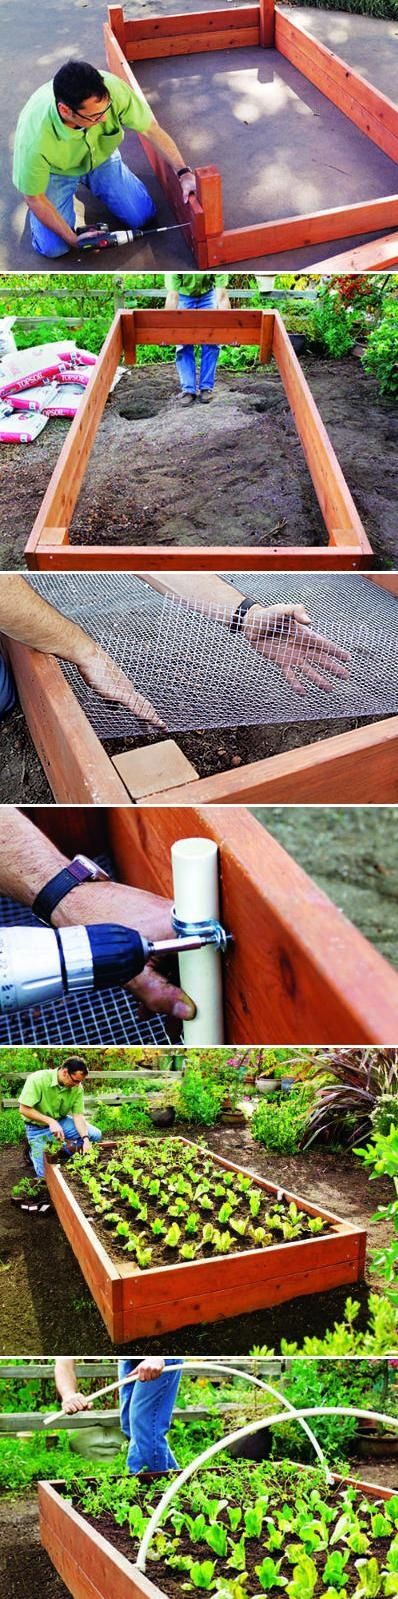 building a perfect raised bed - Dishmon Wood Products : Quality Hand Made Wooden Products Since 1975